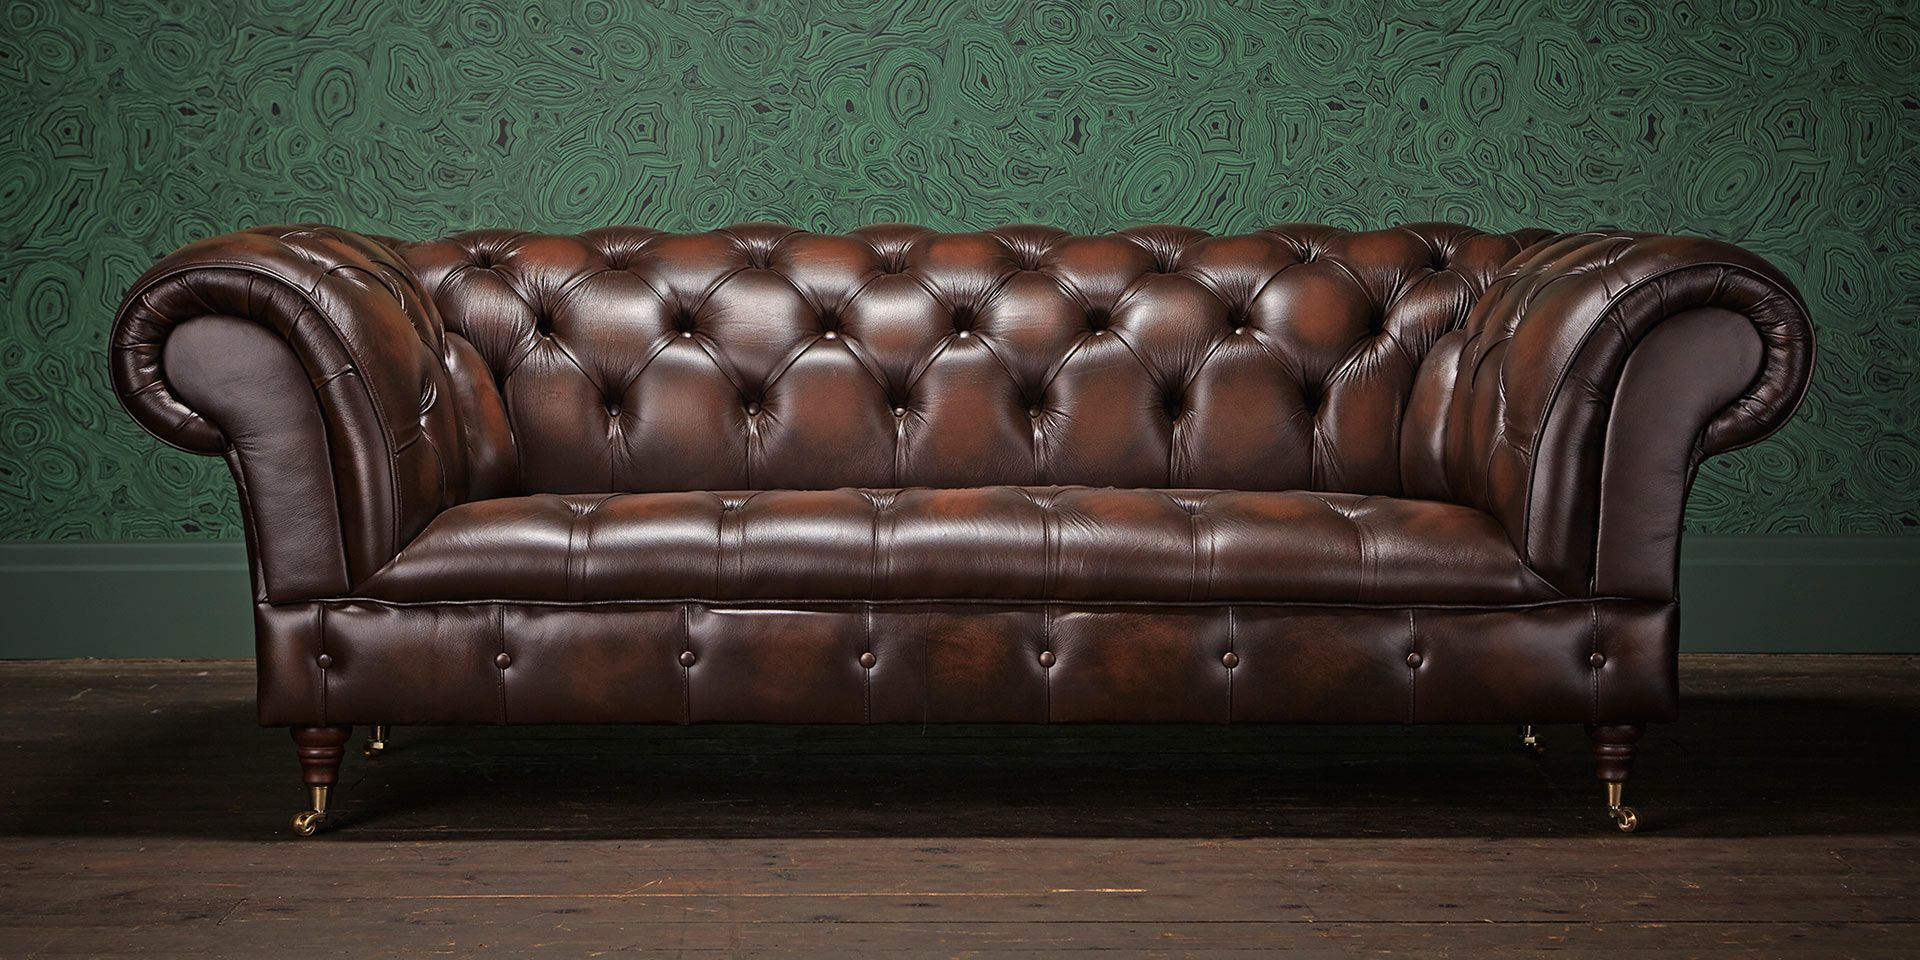 Chesterfield Suites The 1931 In 2019 Chesterfield Sofa Chesterfield Sofa